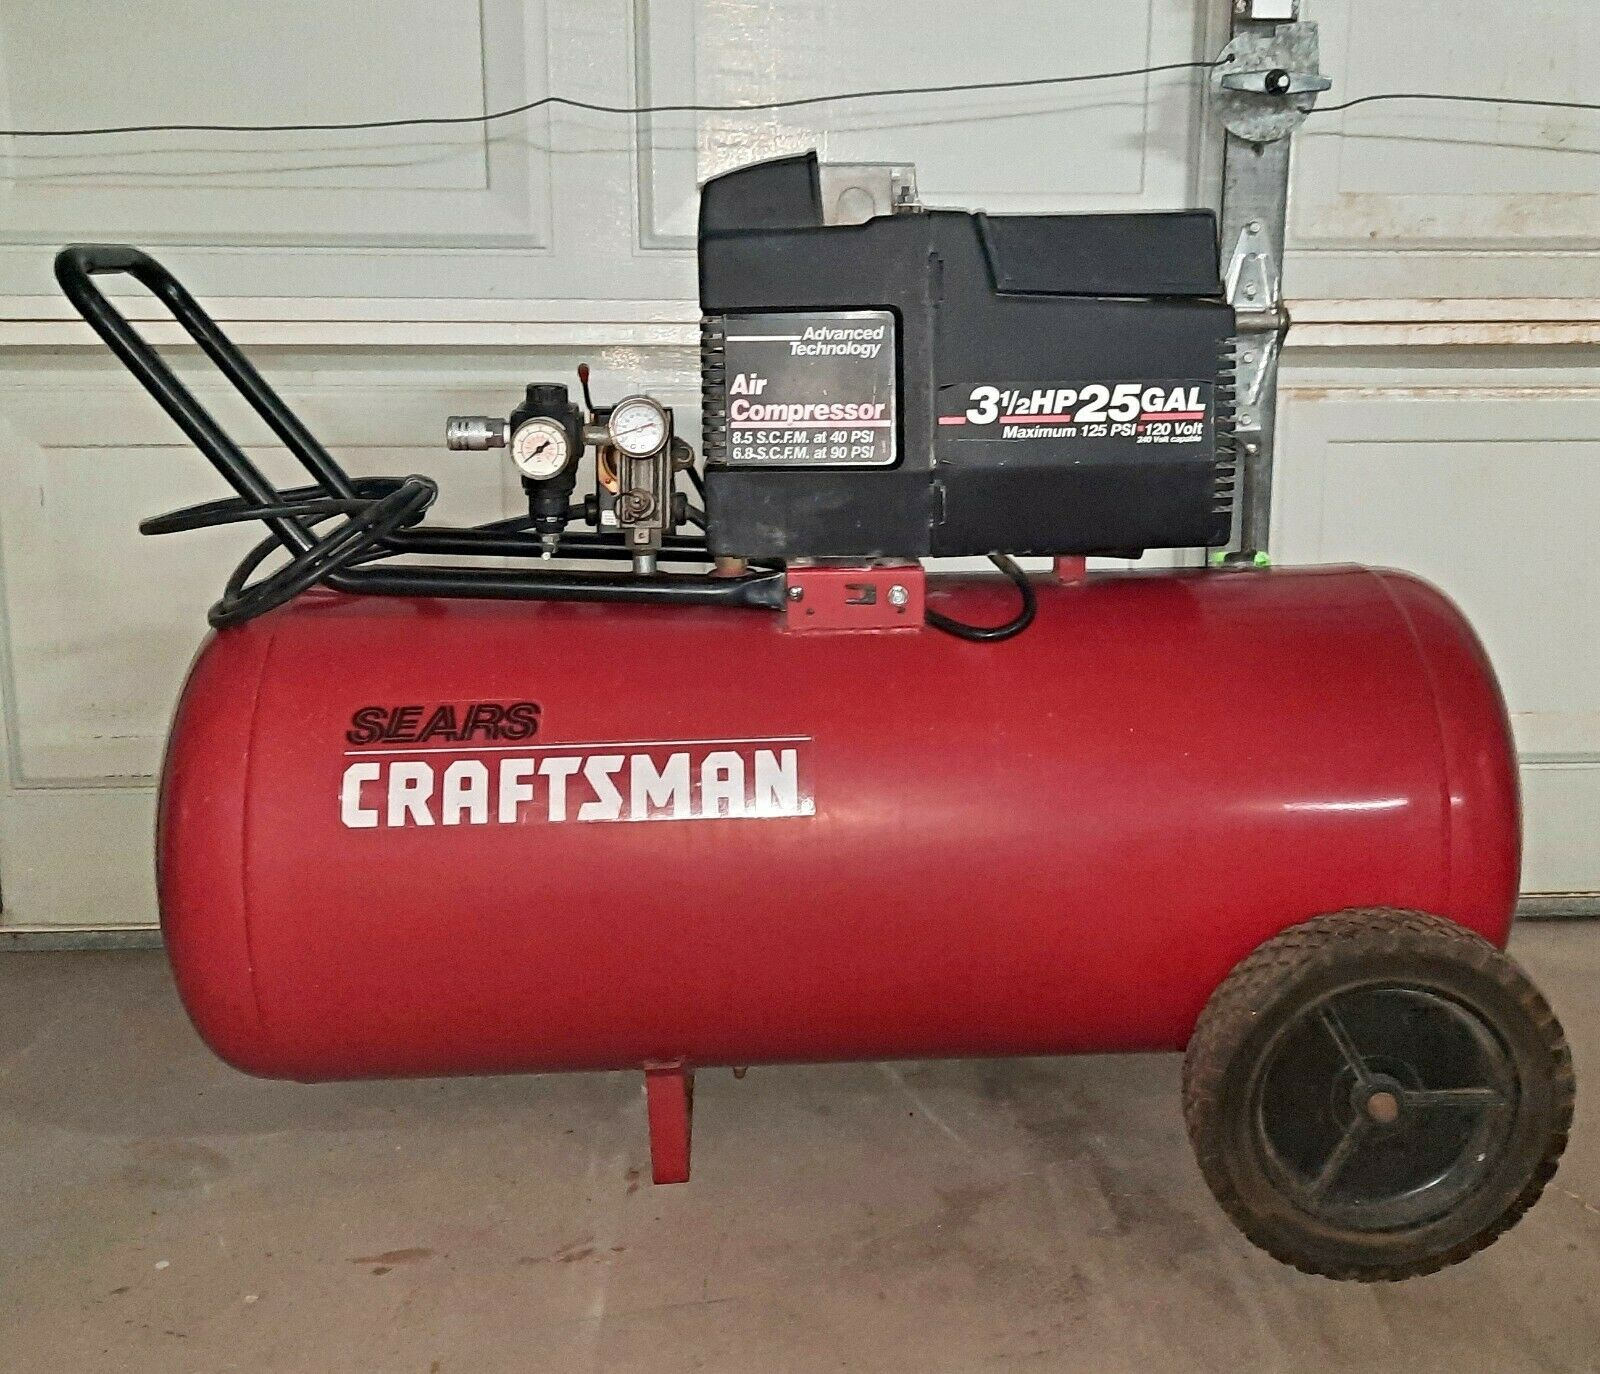 EXC Craftsman 3.5 HP 25 Gallon Air Compressor 120/240V 6.8scfm@90psi New Parts. Available Now for 148.75